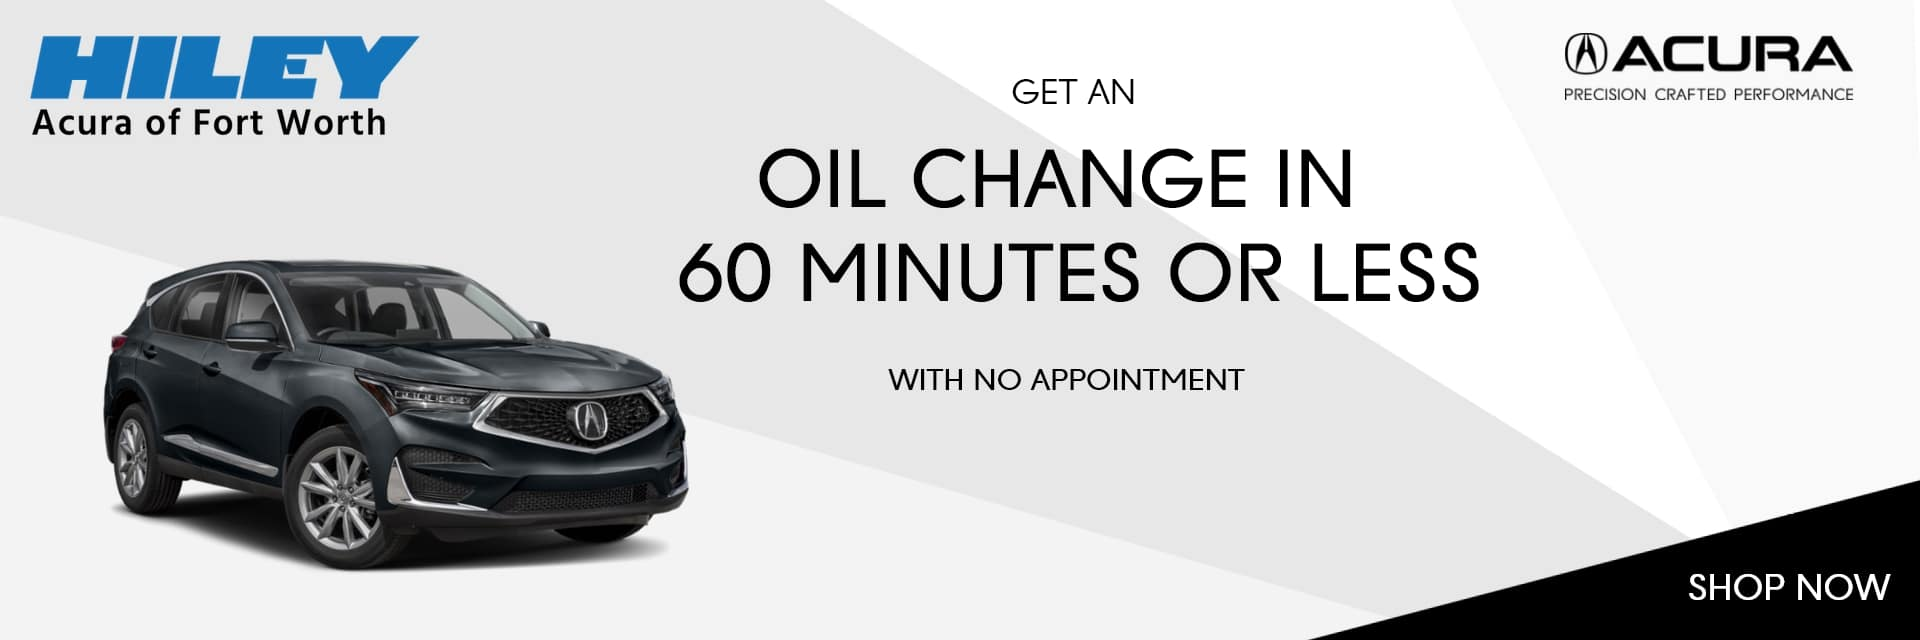 Oil Change in 60 Minutes or Less